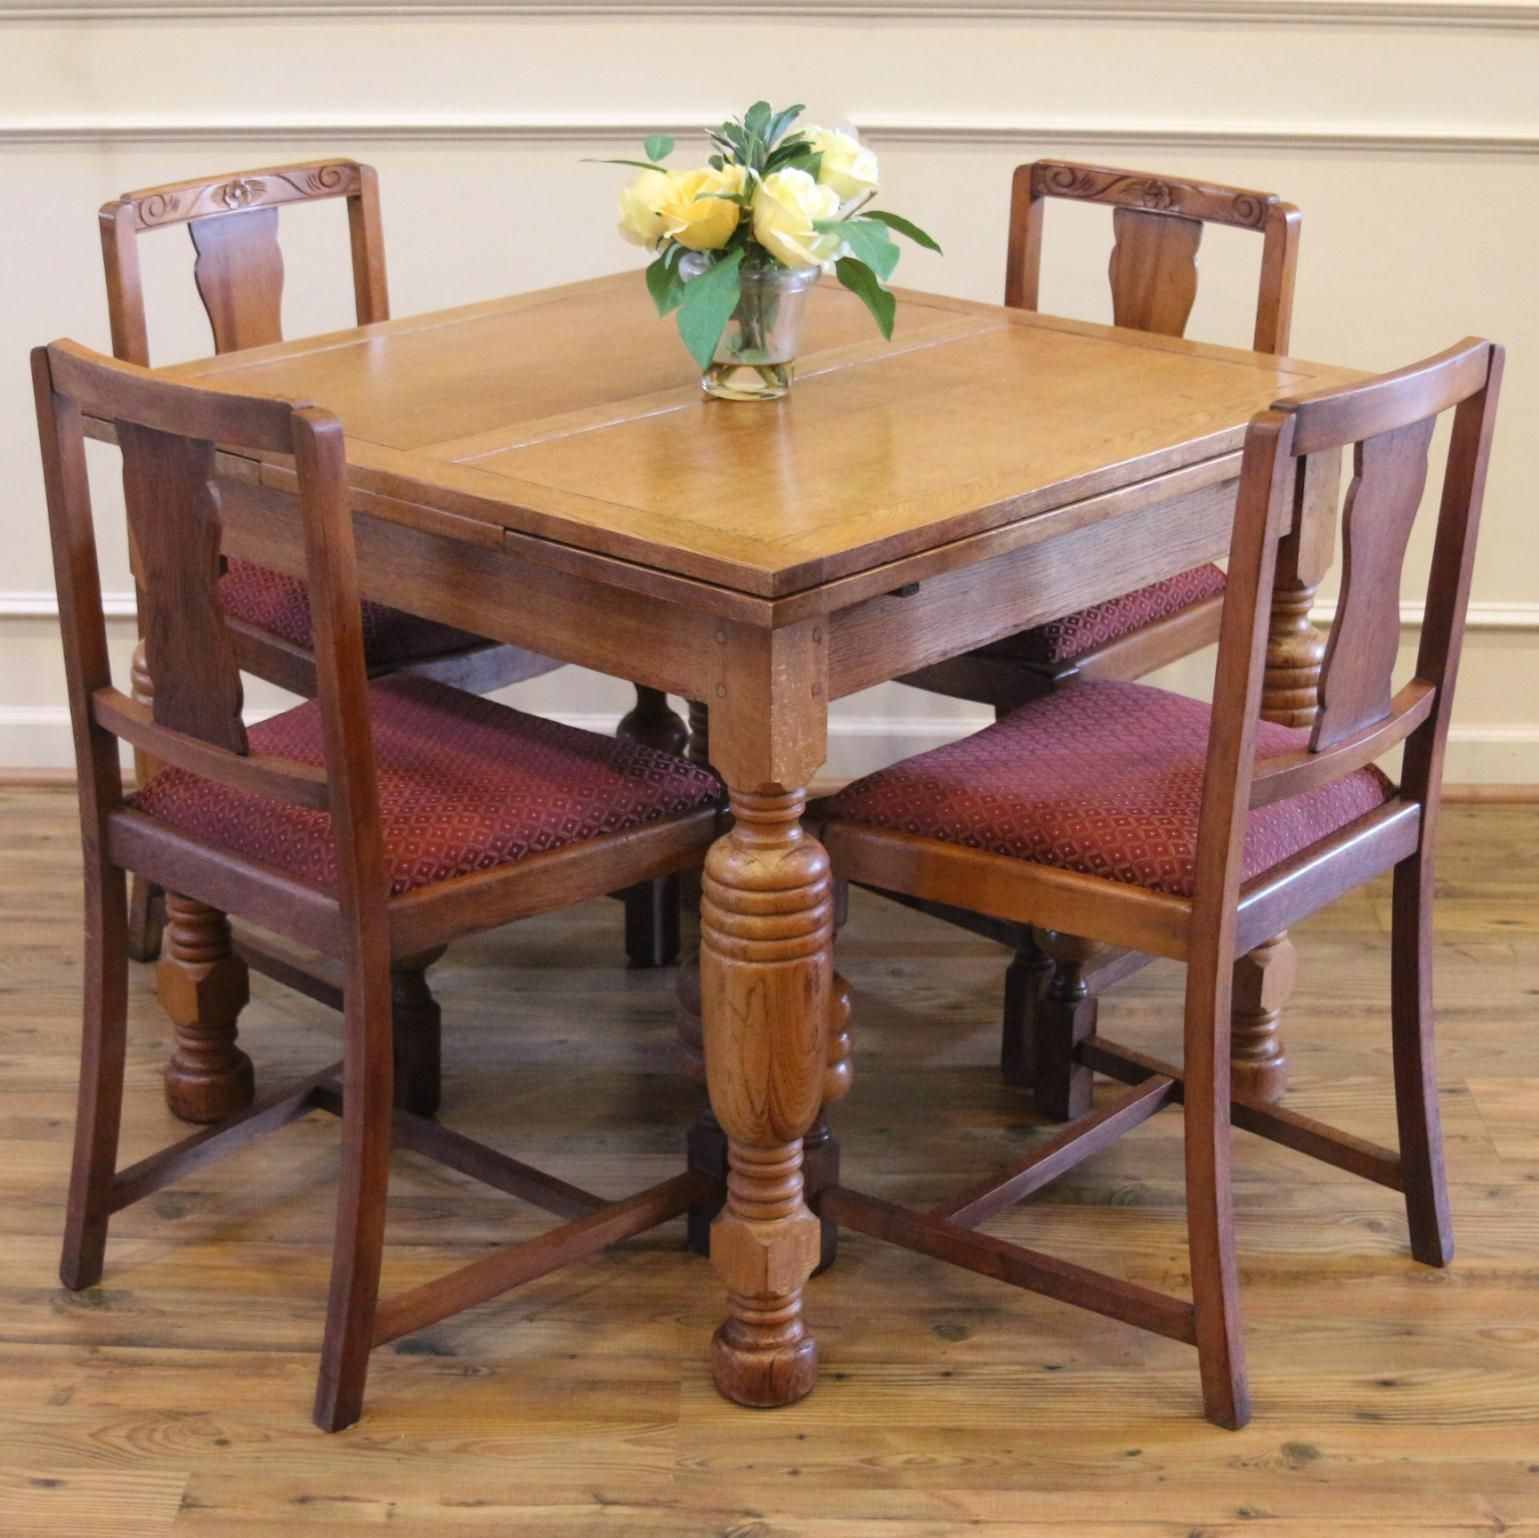 Antique English Oak Pub Table And 4 Chairs Dining Set (Image 2 of 20)